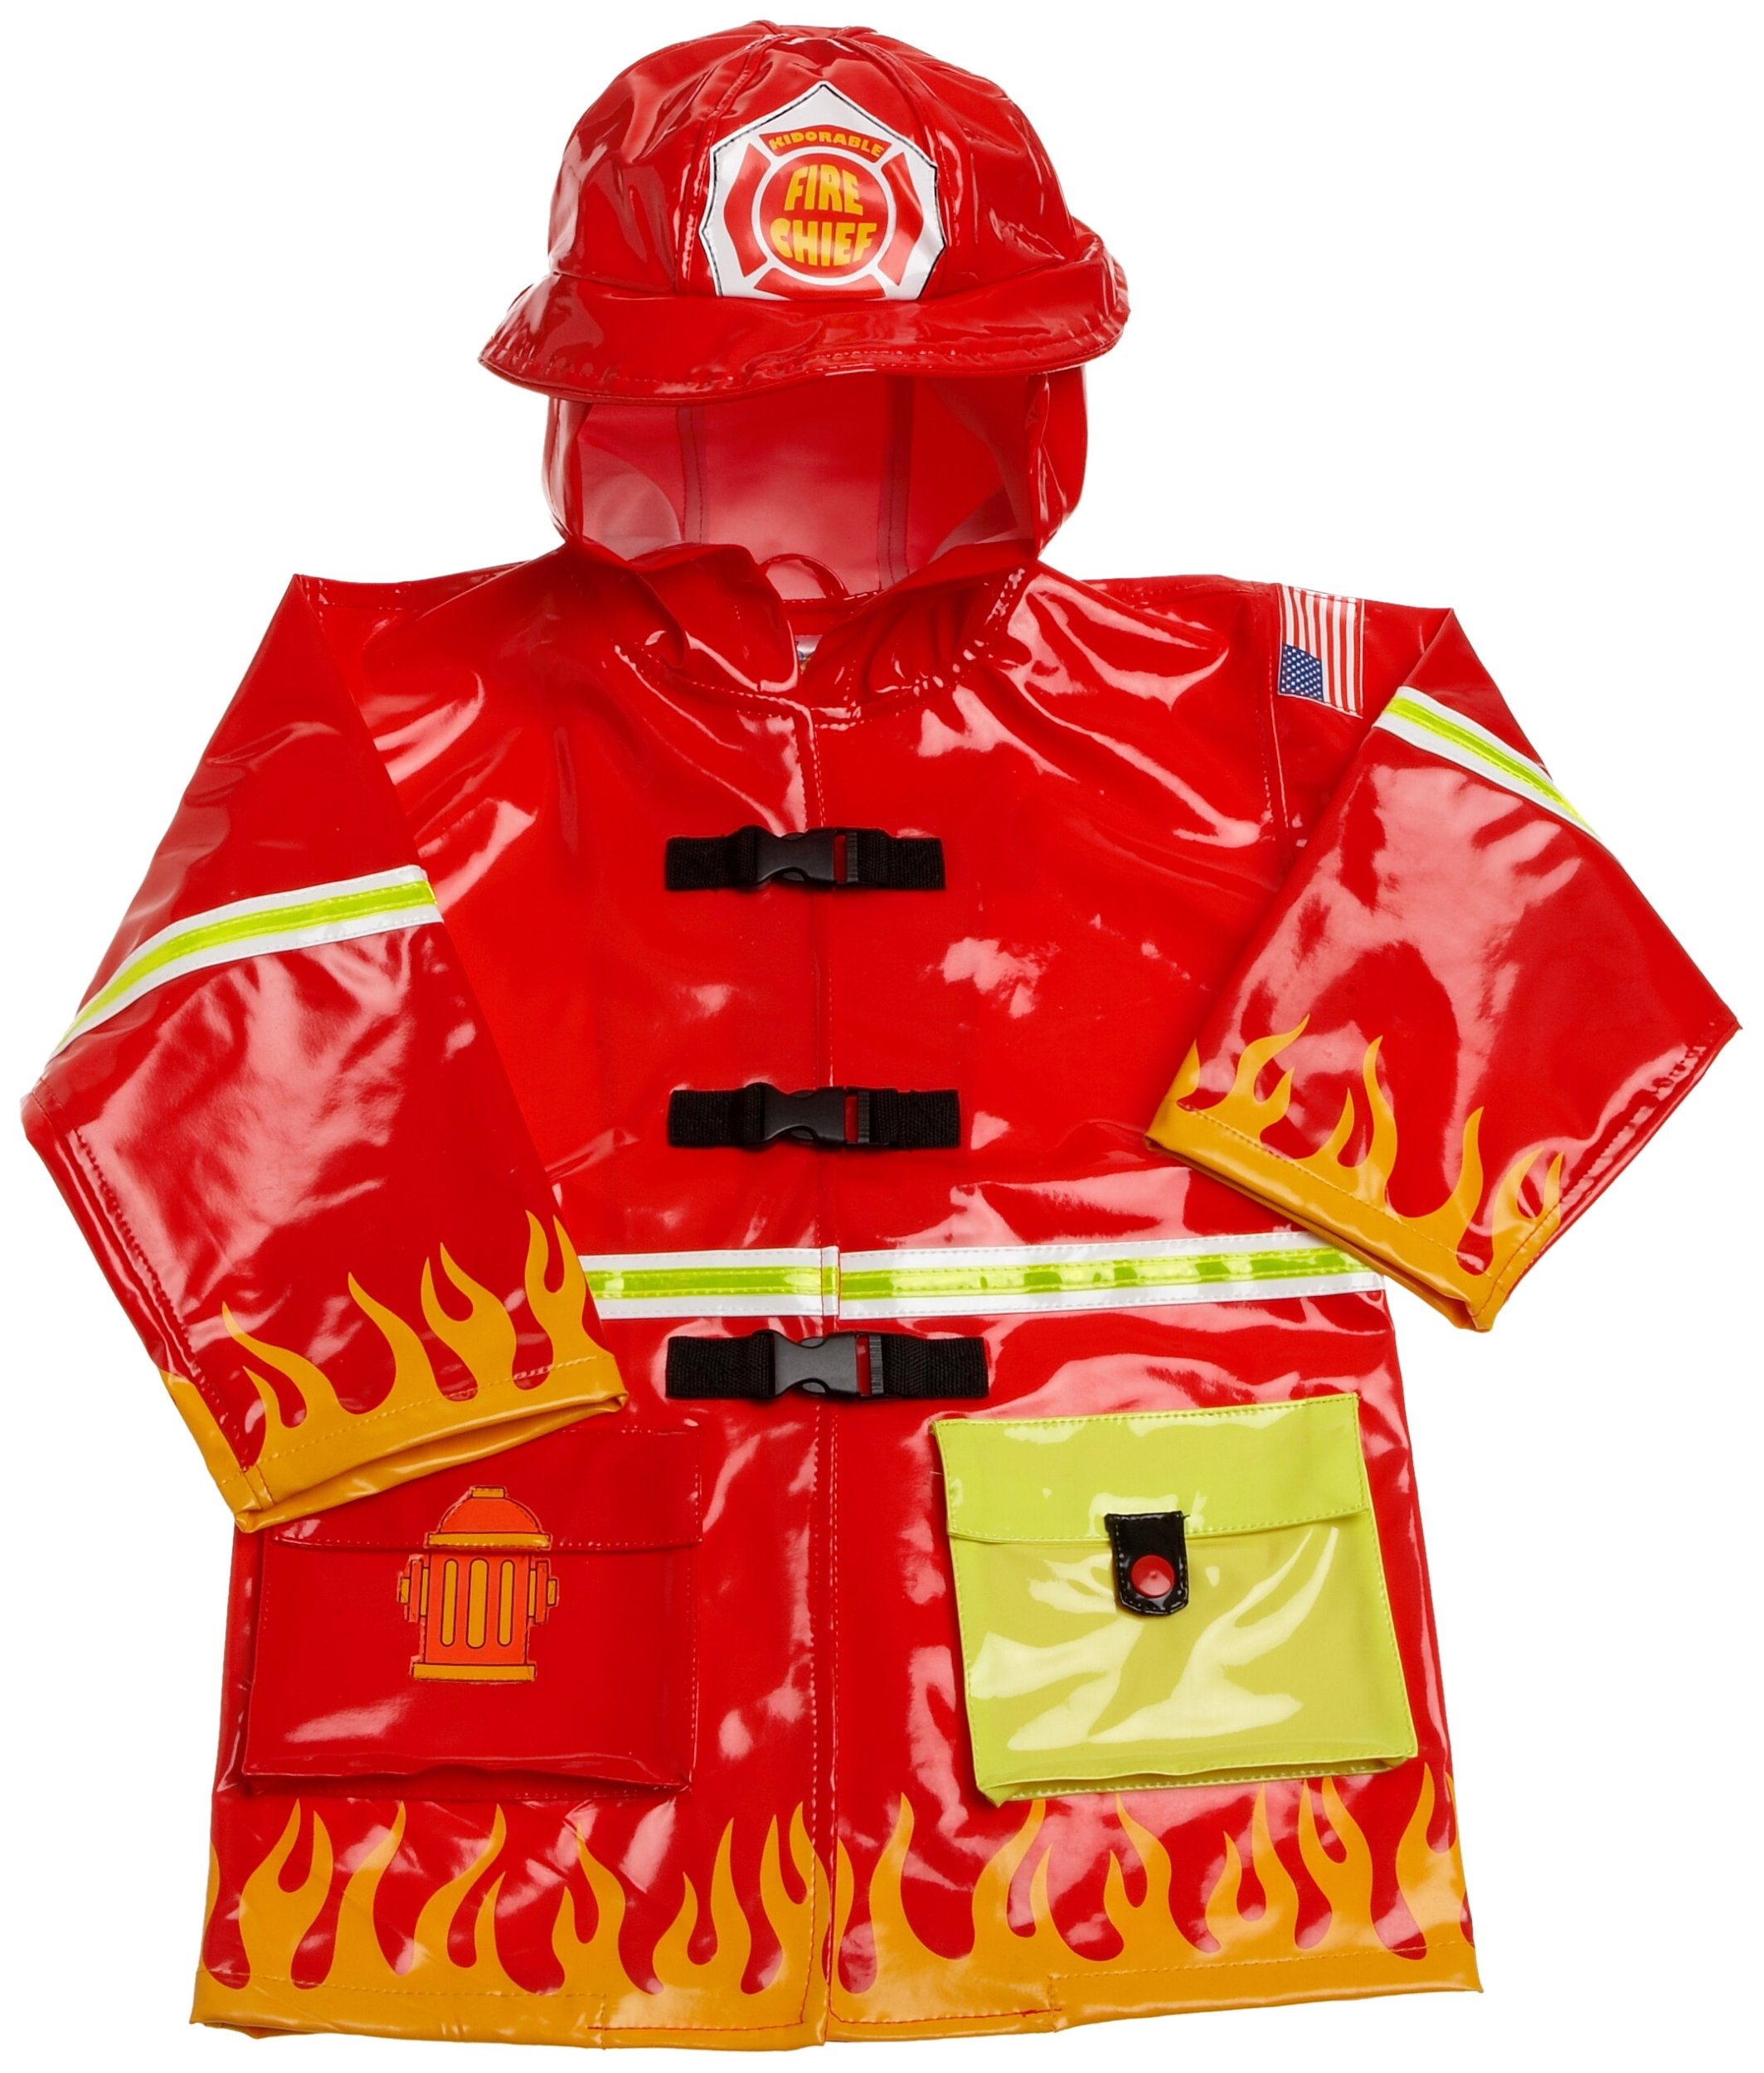 Kidorable Fireman Raincoat, Red, 12 18M by Kidorable